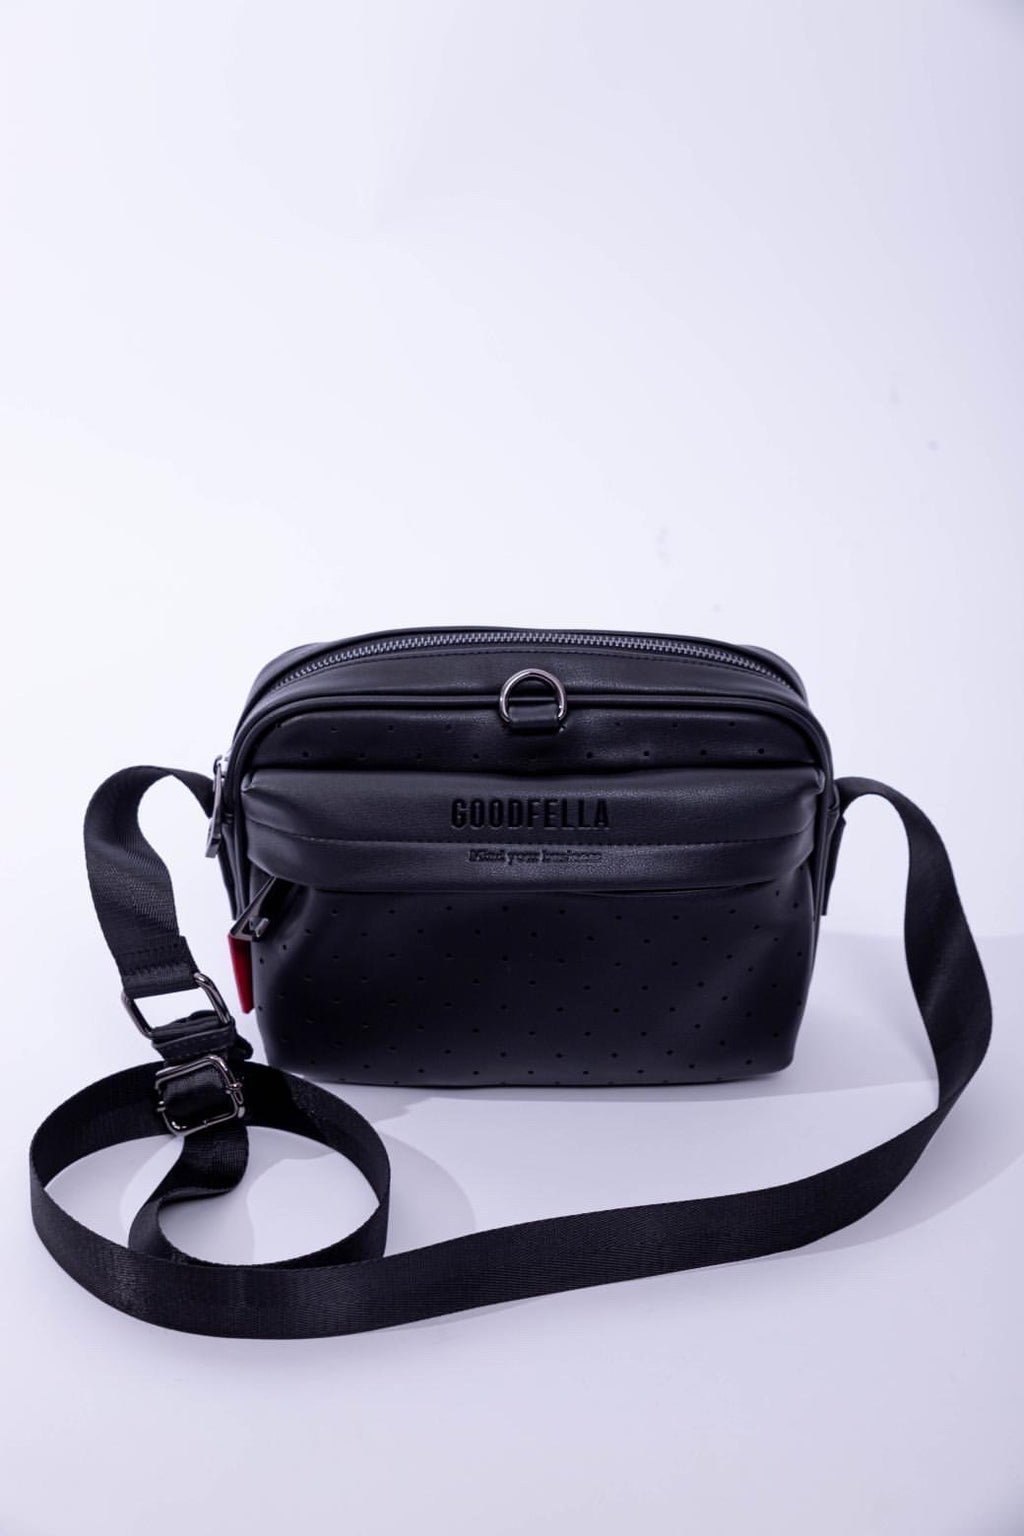 Goodfella Messenger Bag